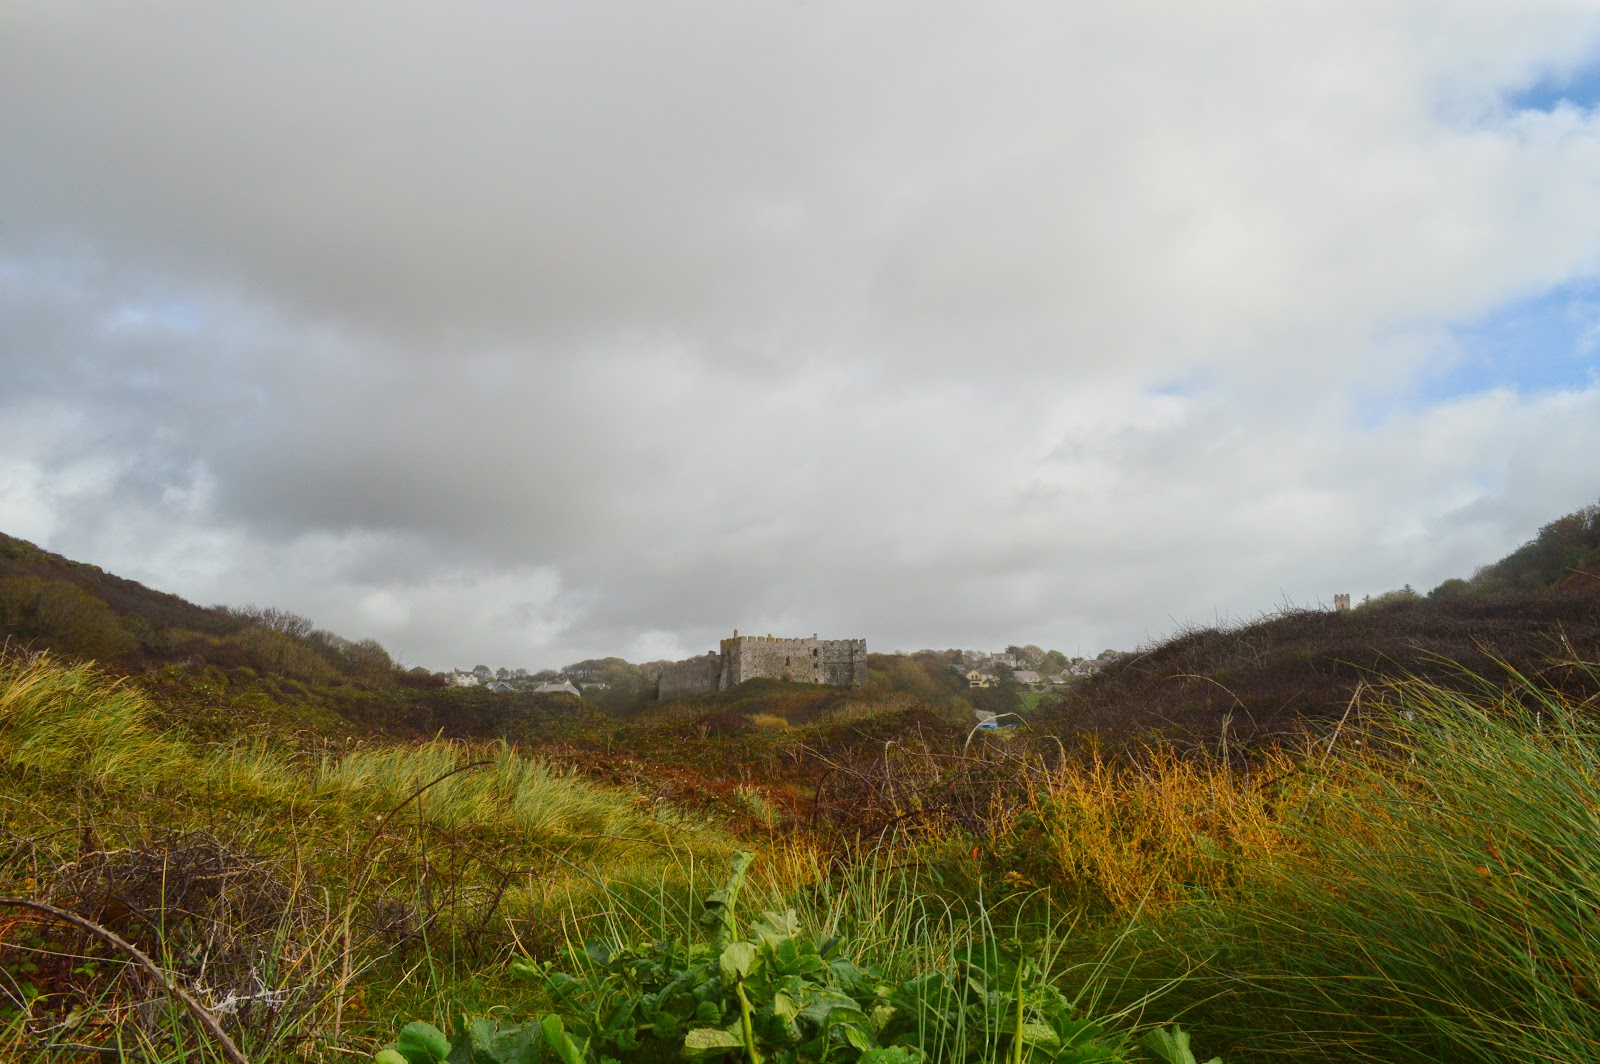 Manorbier Castle seen from Manorbier Beach, Pembrokeshire, Wales